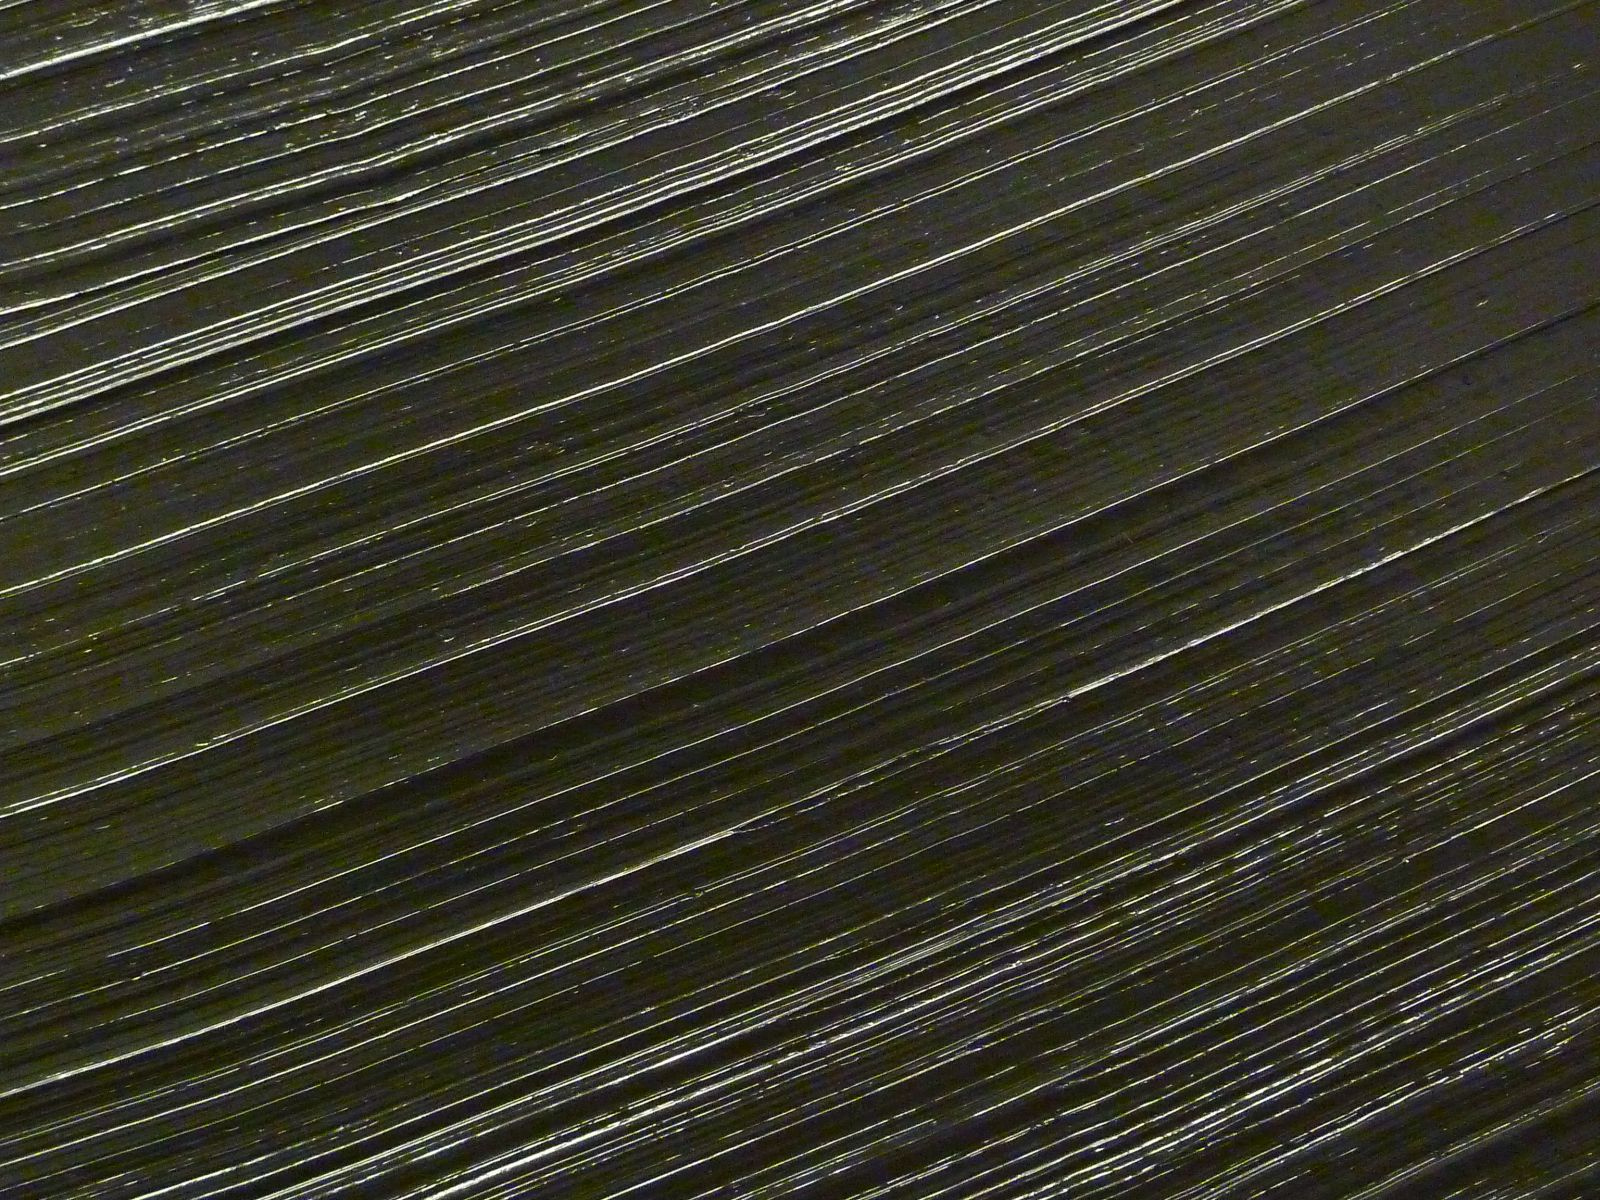 Detail of one of Pierre Soulages's paintings